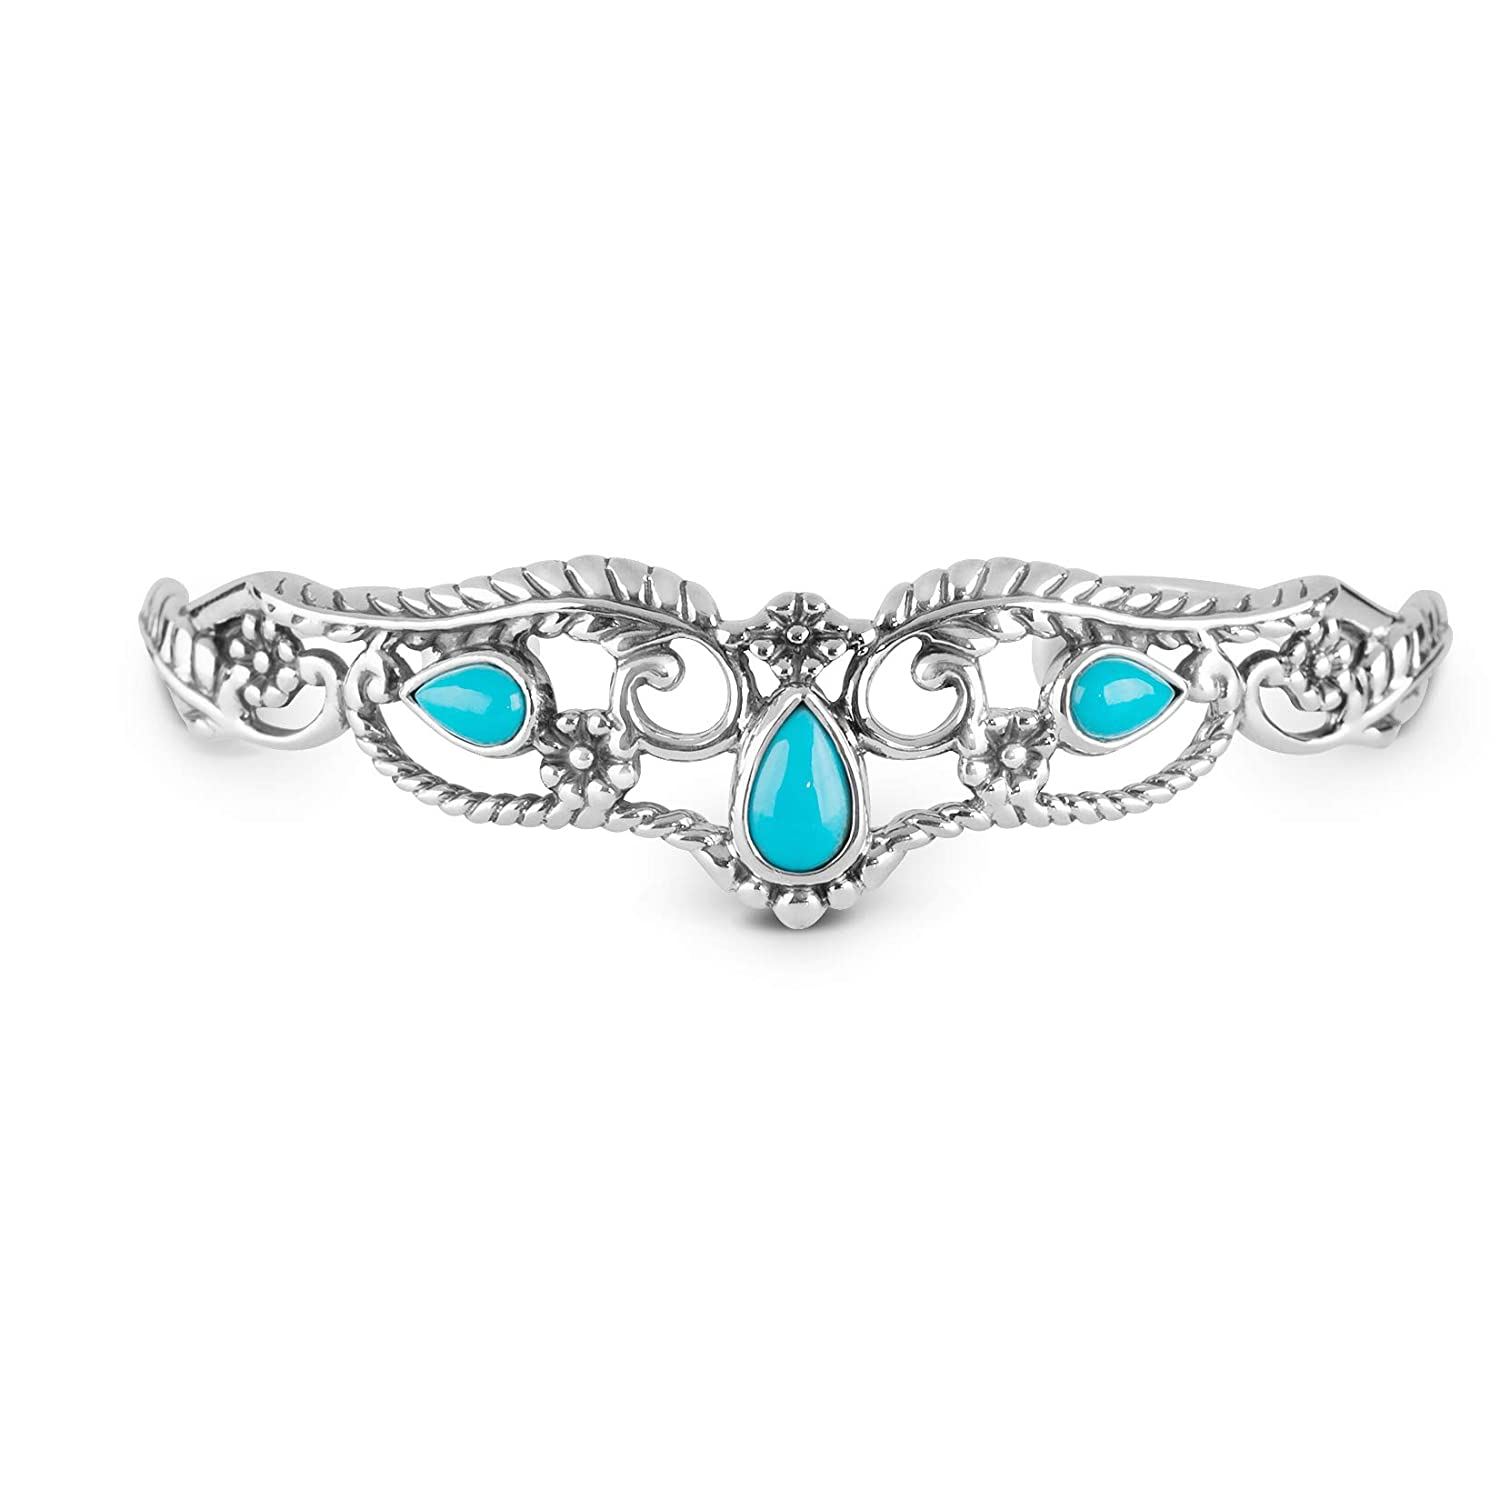 American West Sterling Silver Blue Sleeping Beauty Turquoise Gemstone Leaf and Flower Cuff Bracelet Size S, M or L